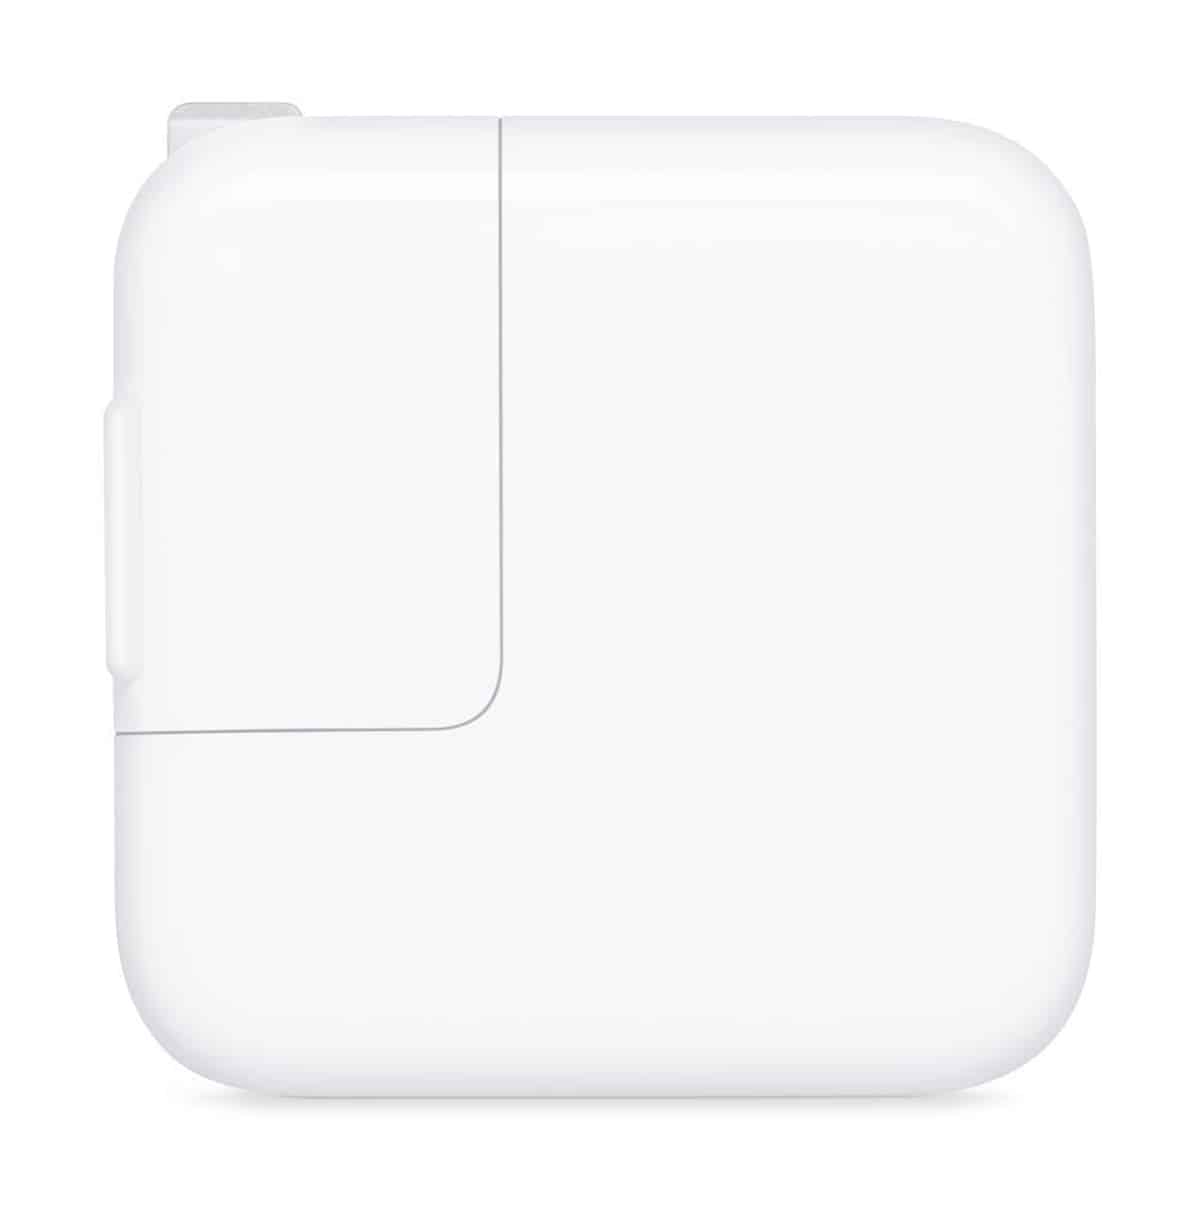 Apple USB Power Adapter | Essential iPad Accessories